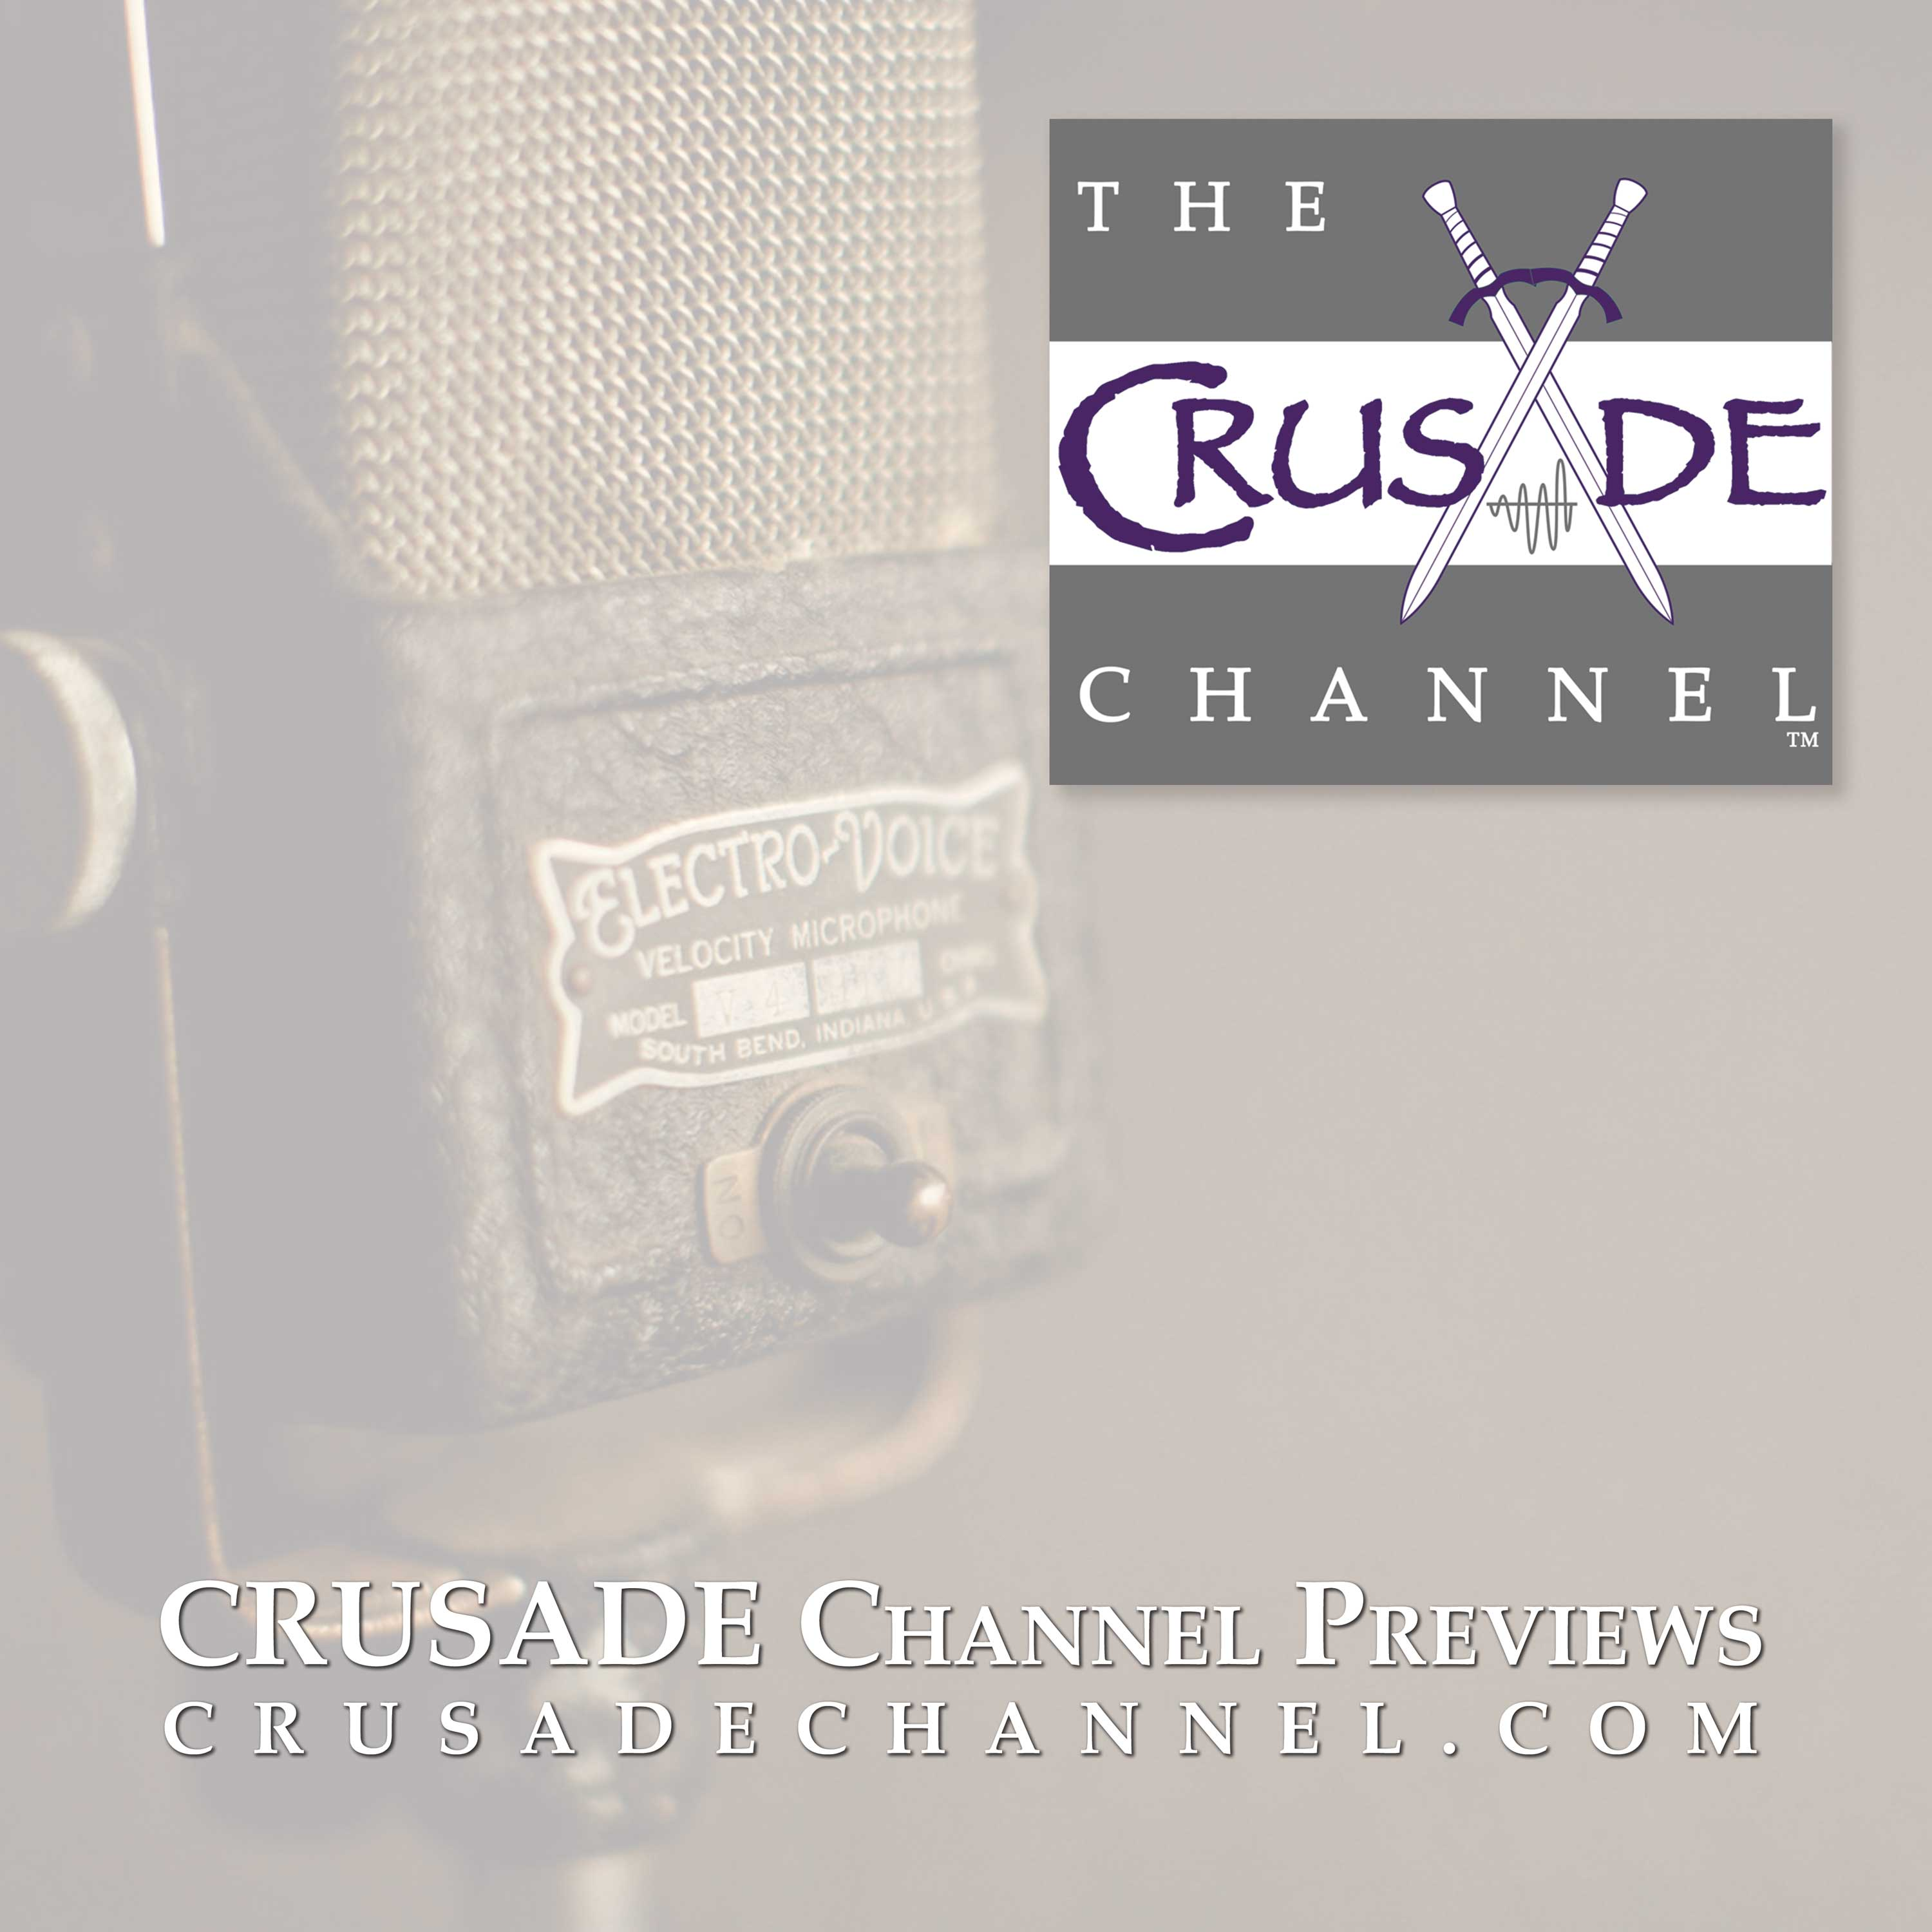 The Crusade Channel Previews